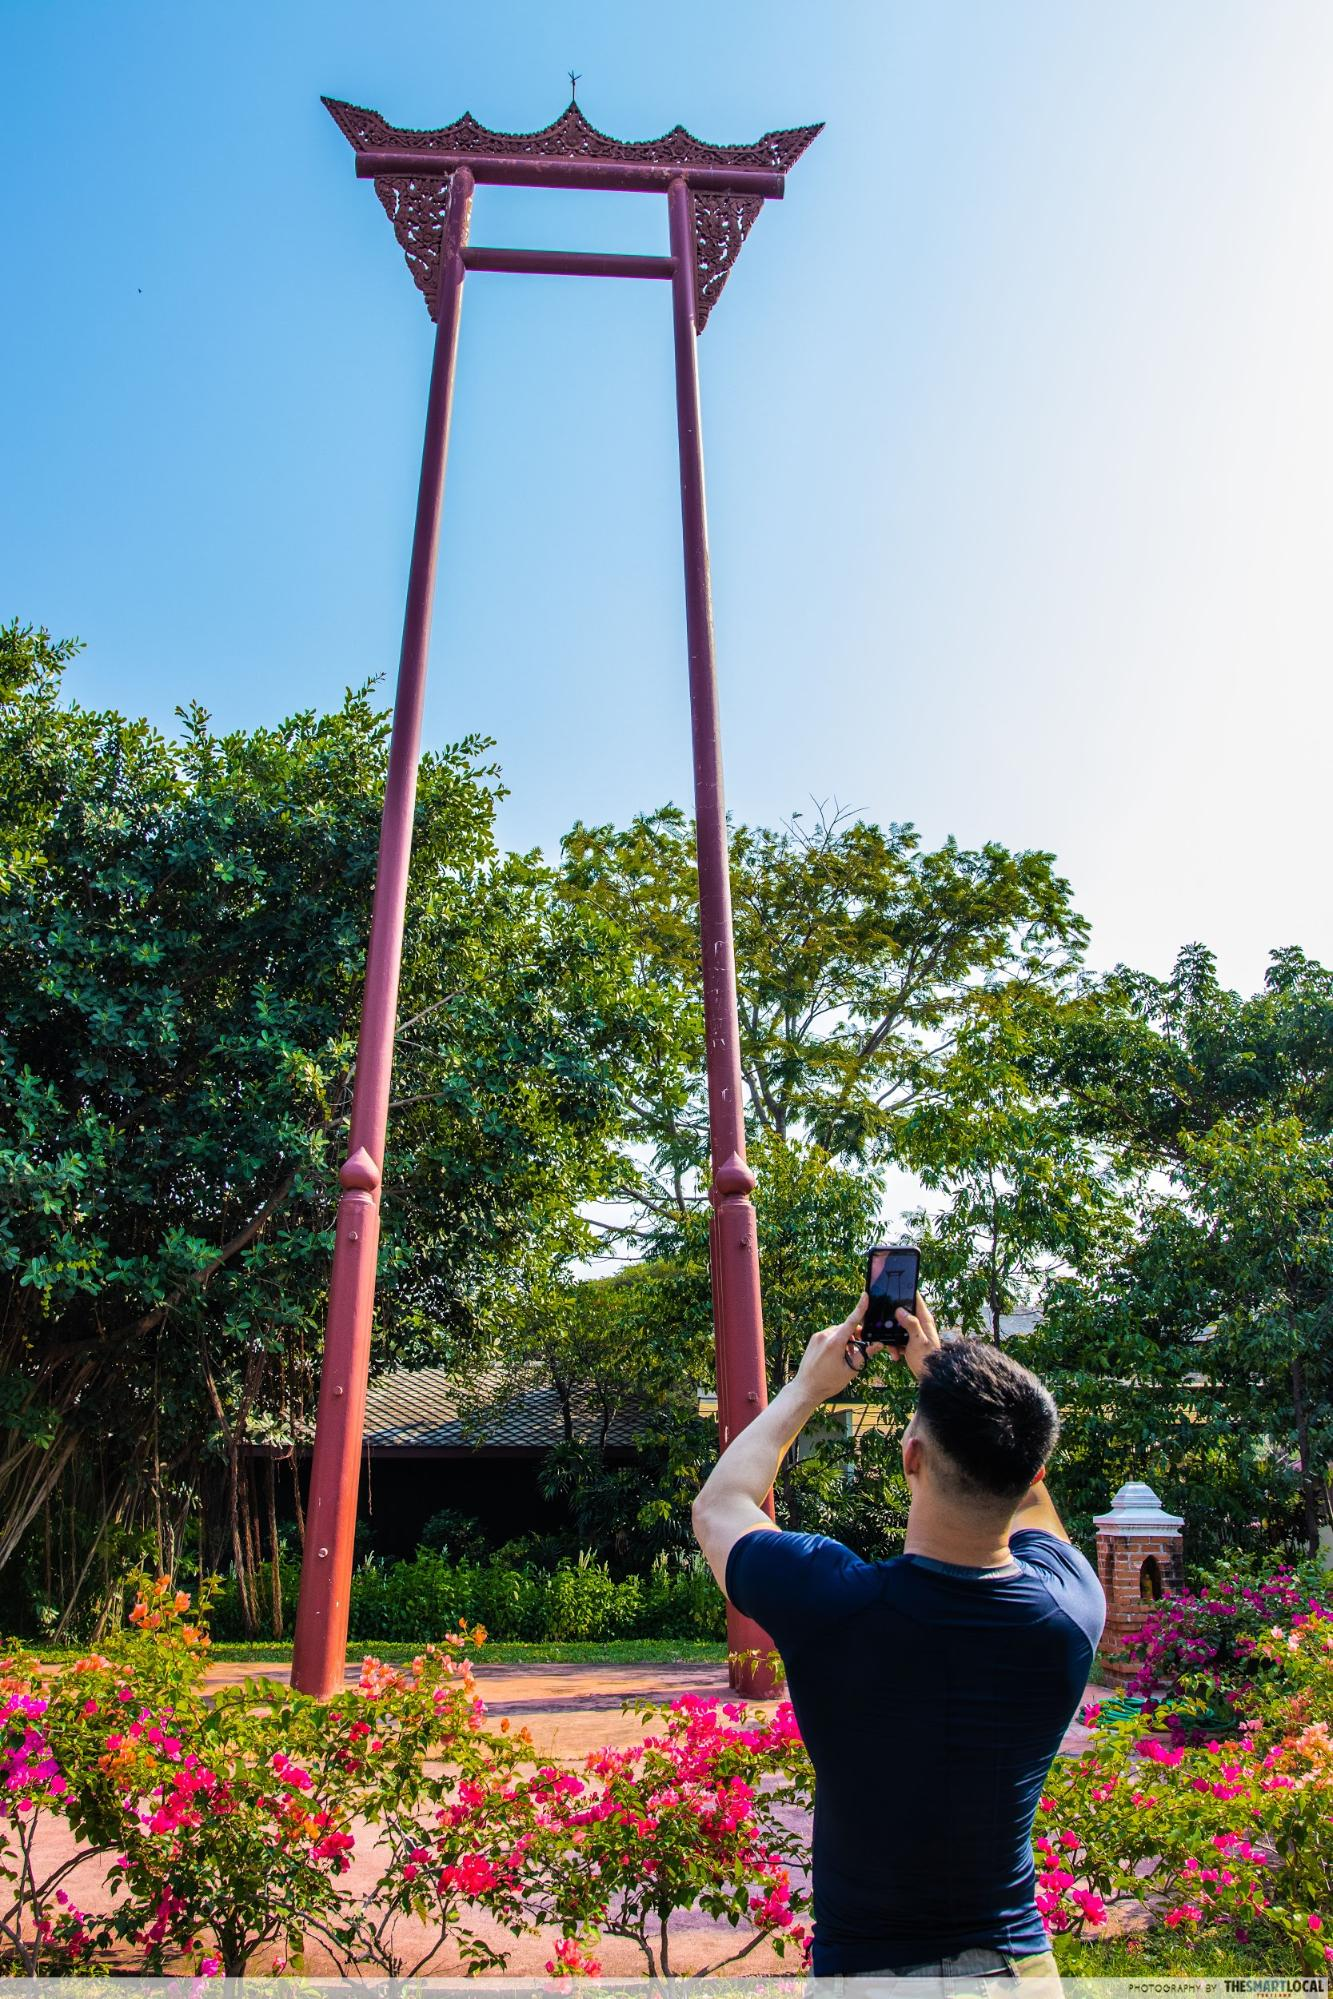 Bangkok's Giant Swing